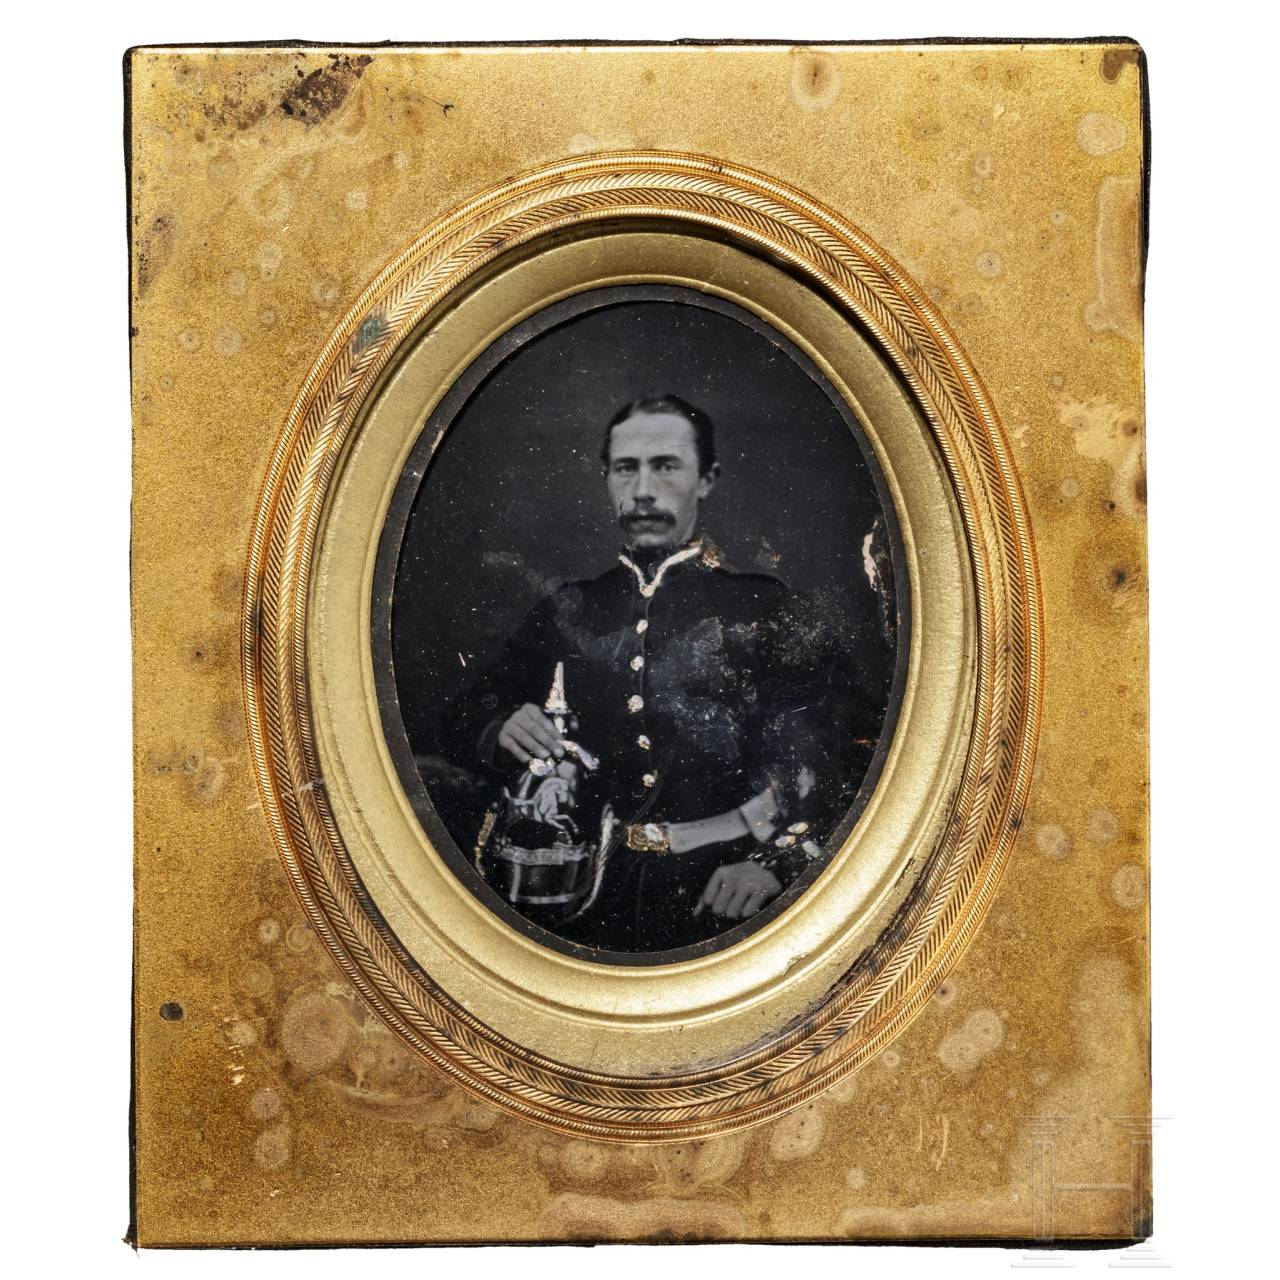 An ambrotype of a Hanoverian soldier, mid 19th century